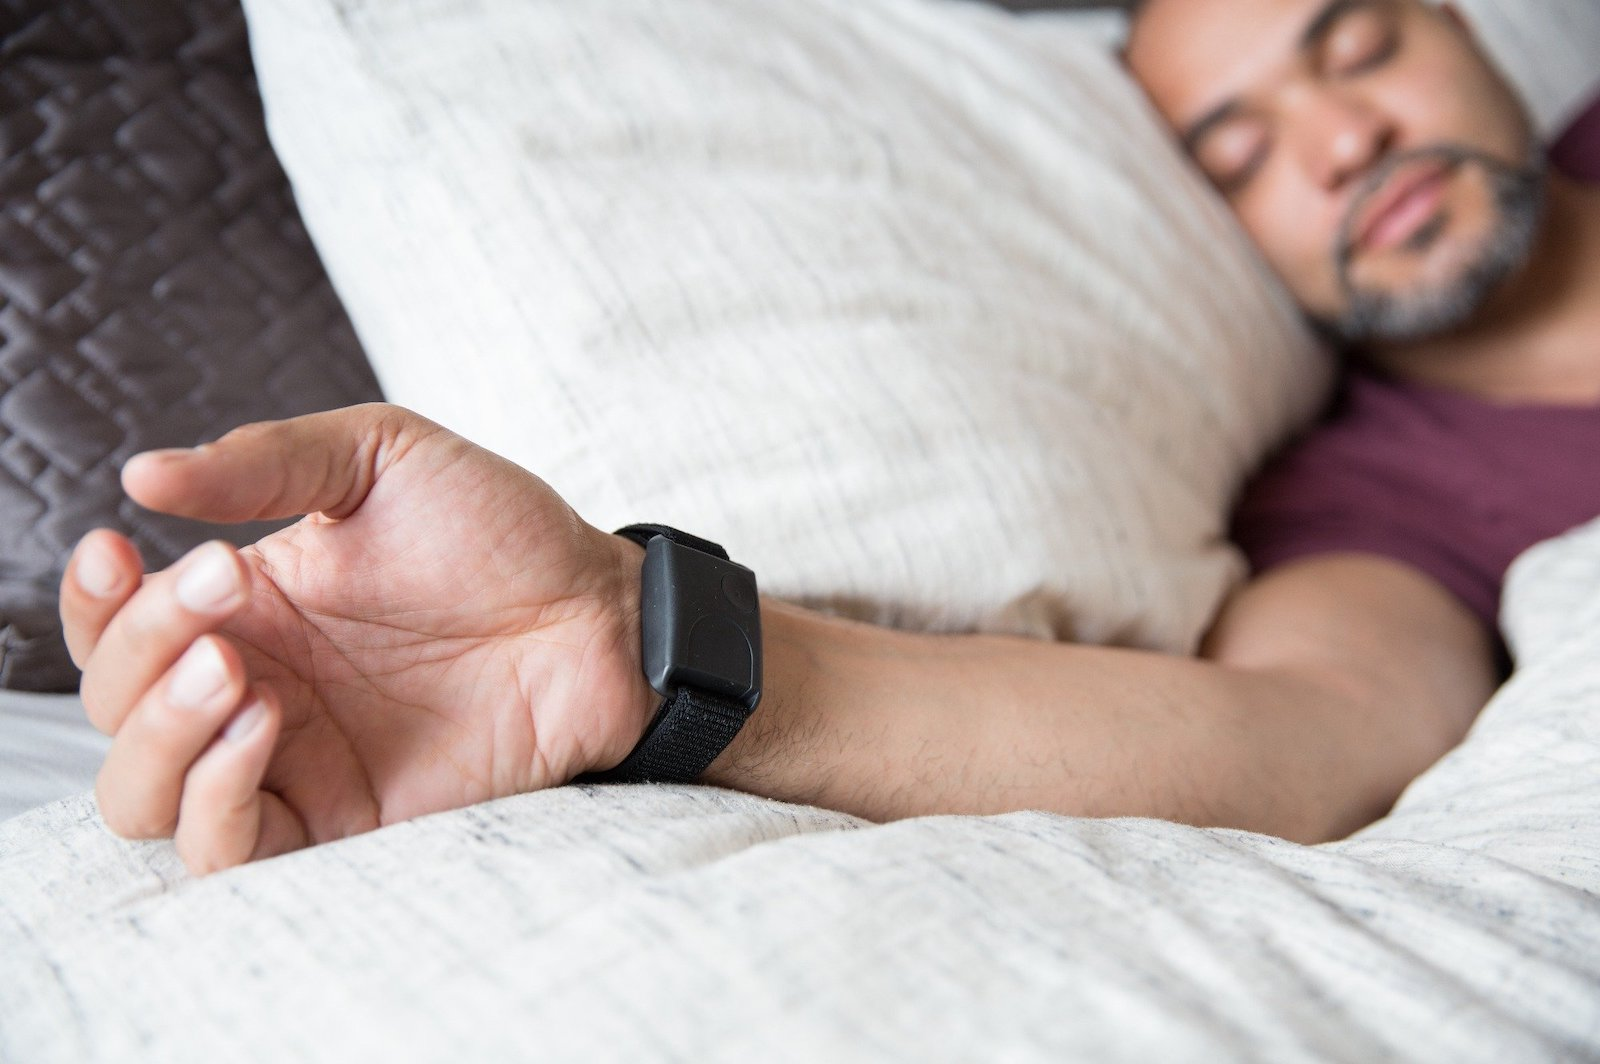 DreamOn wearable sleep aid